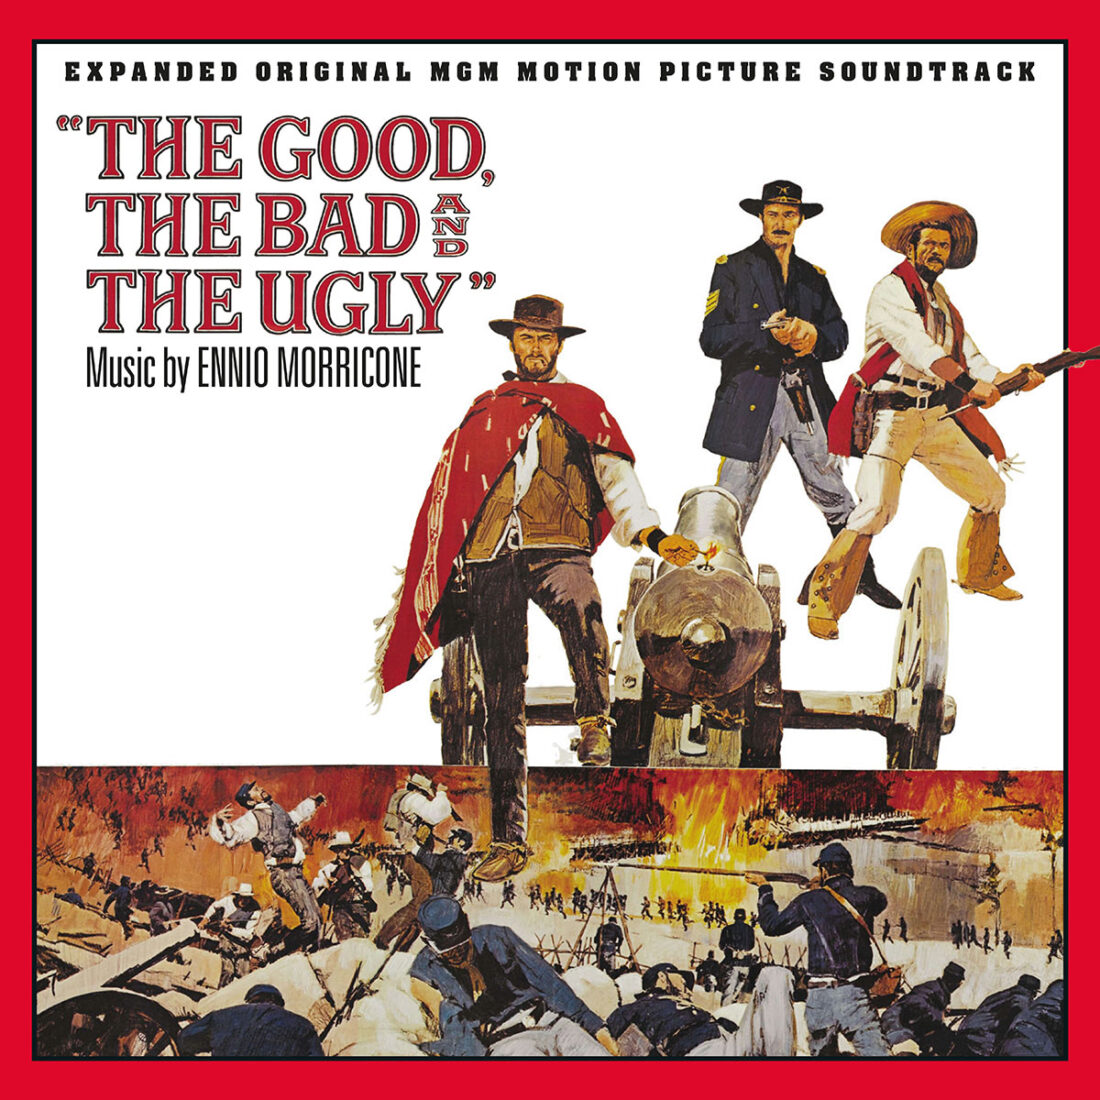 The Good, the Bad and the Ugly Expanded Ennio Morricone Original MGM Motion Picture Soundtrack 3-CD Set + Clint Eastwood Interview Booklet